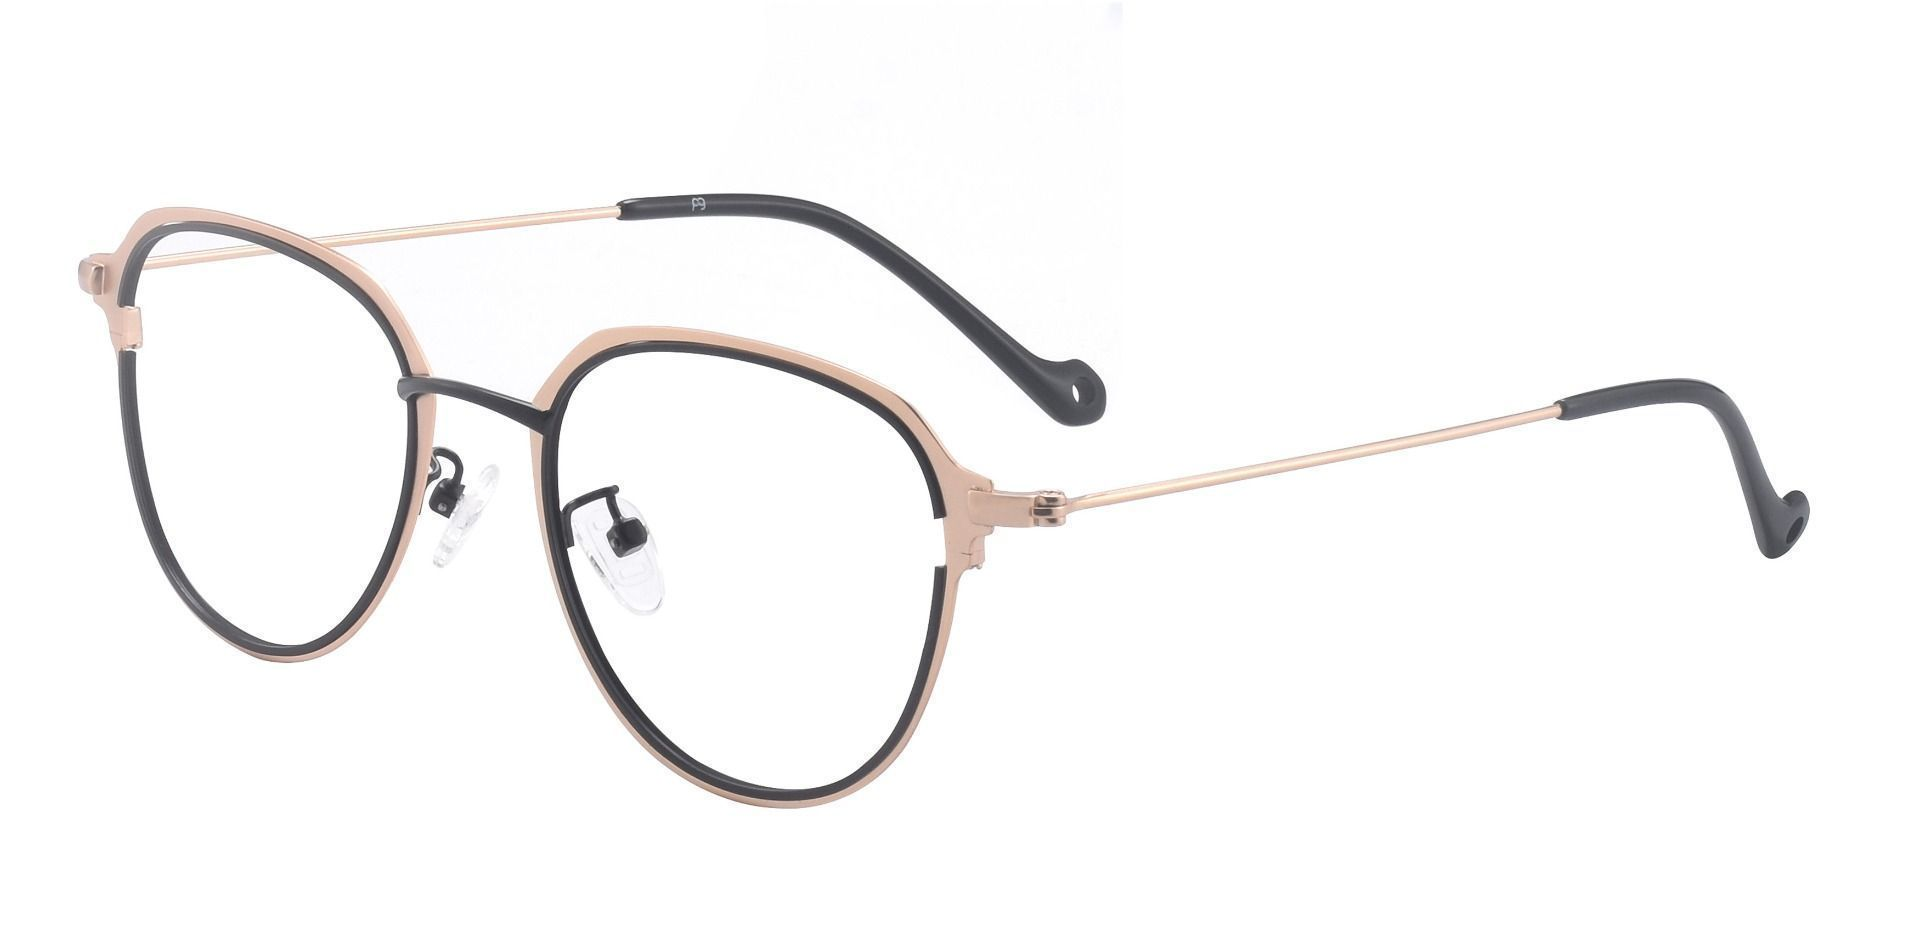 Murray Geometric Prescription Glasses - The Frame Is Black And Yellow